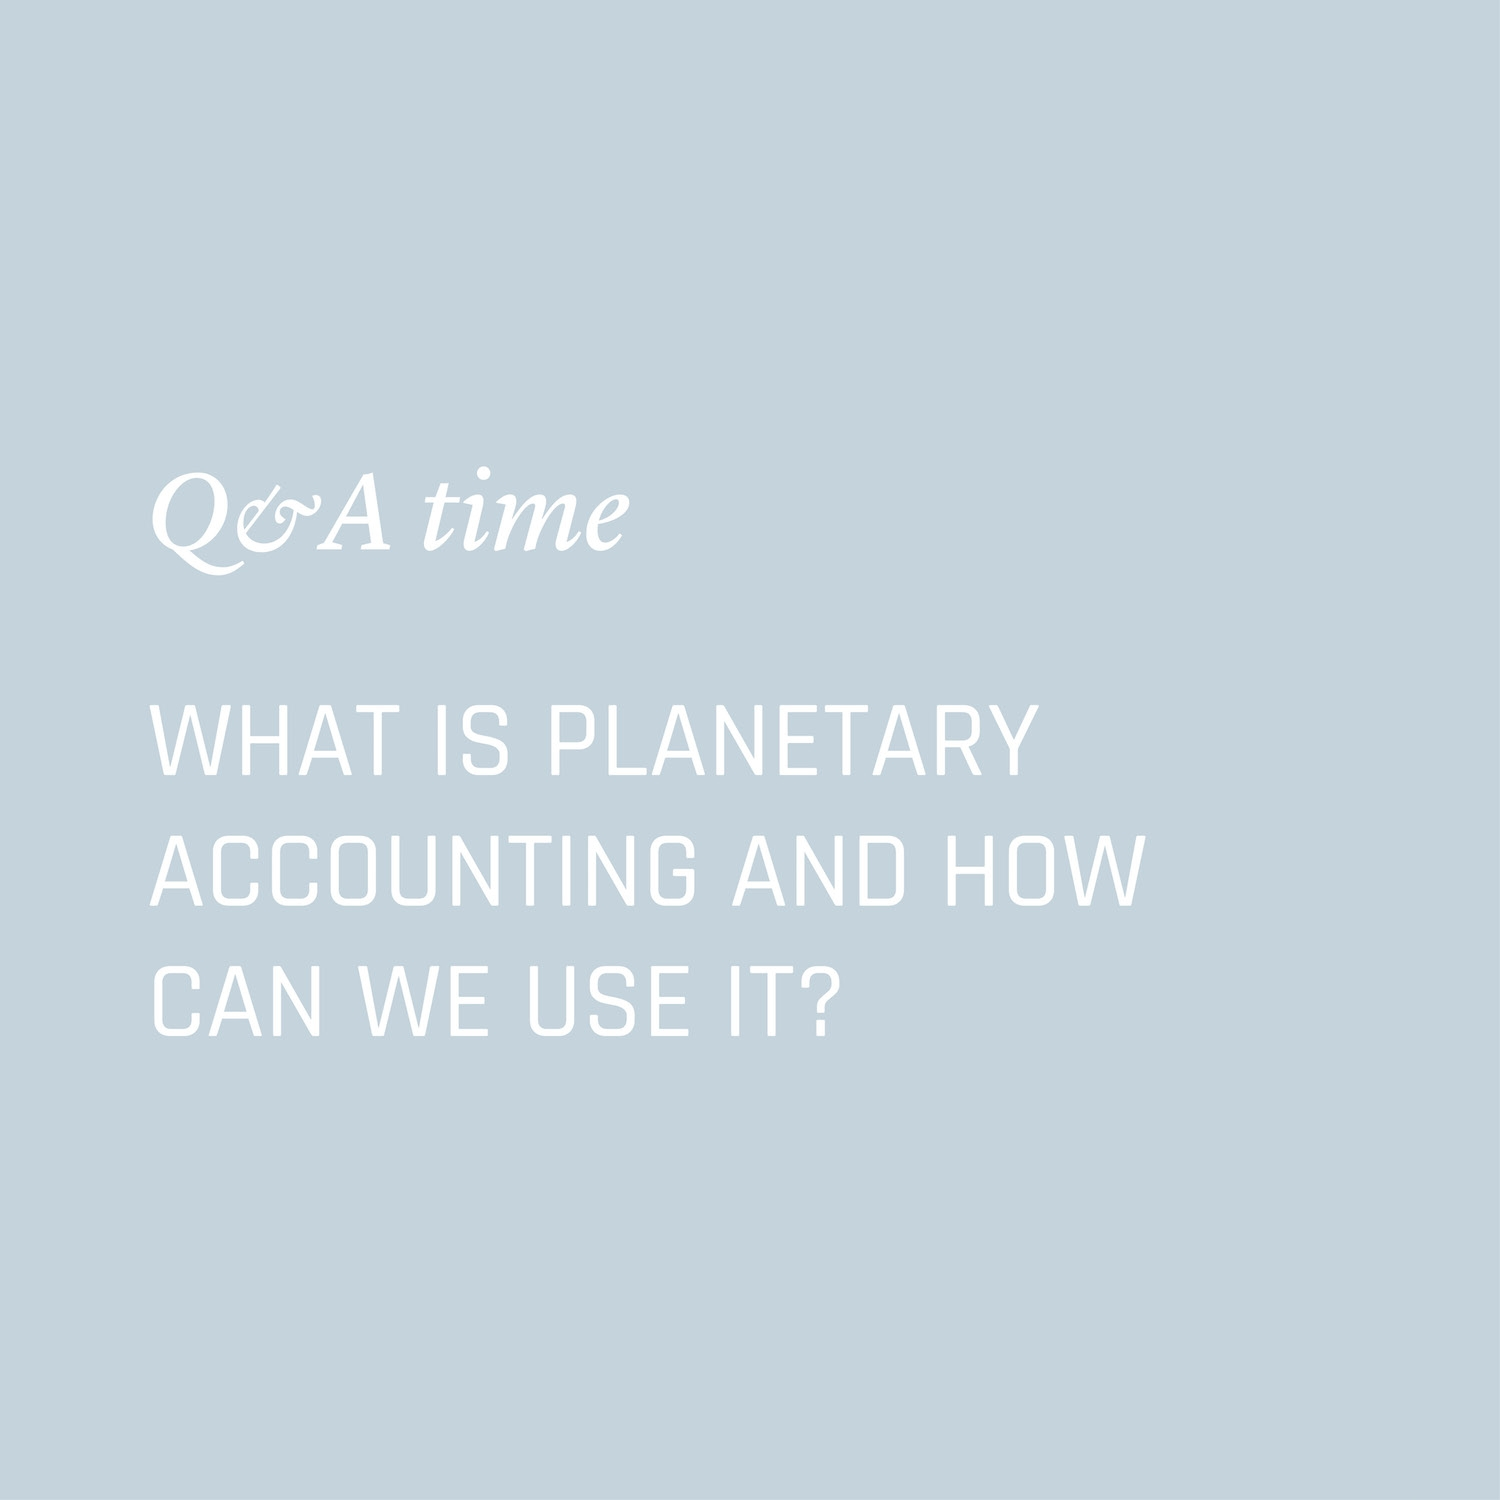 What is planetary accounting and how can we use it? Environment Environmental Questions FAQs Frequently Asked Questions Climate Change Plastics Oceans Animals Nowhere & Everywhere